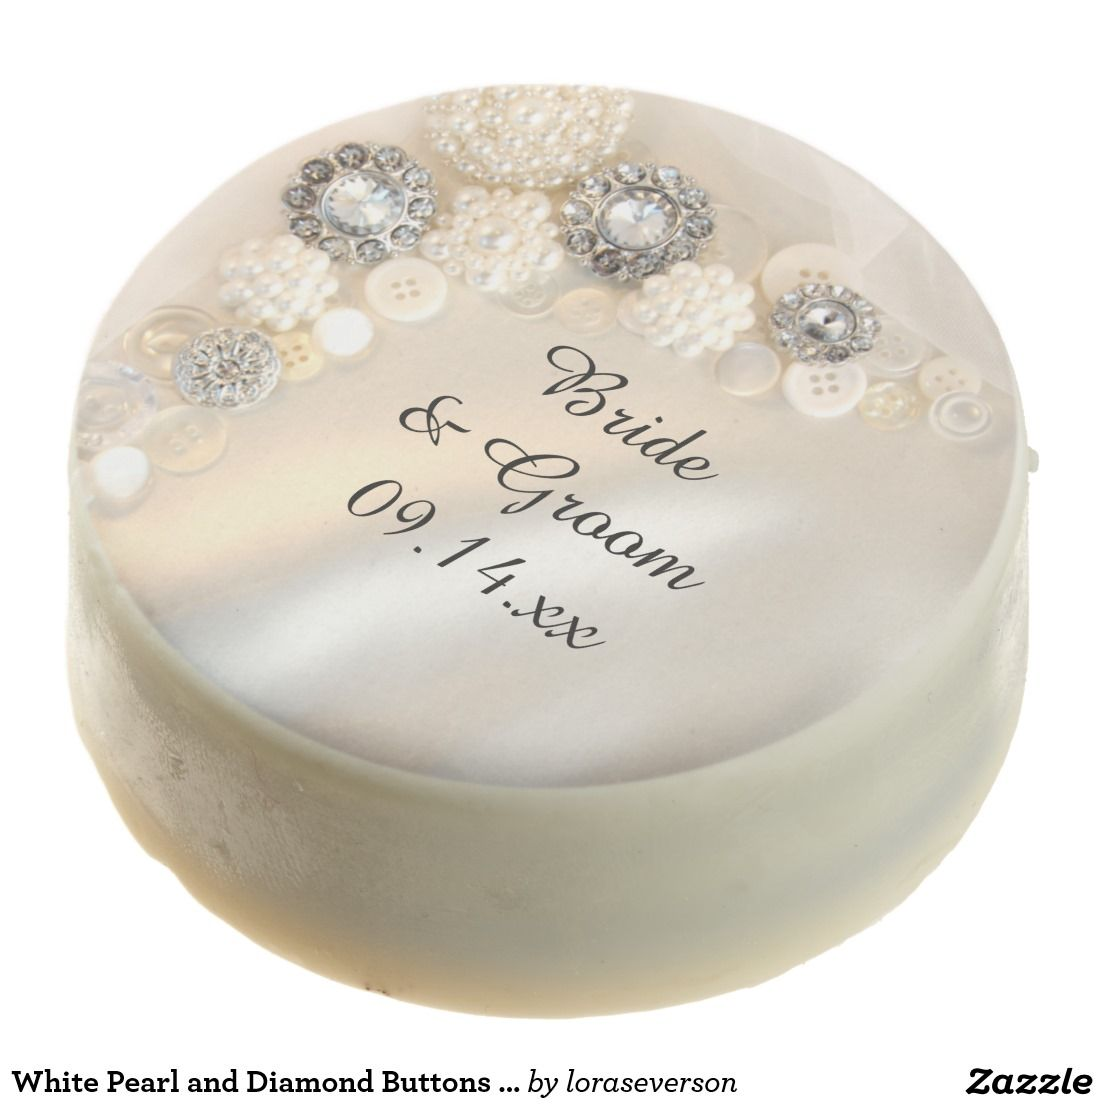 White Pearl and Diamond Buttons Wedding Chocolate Covered Oreo ...